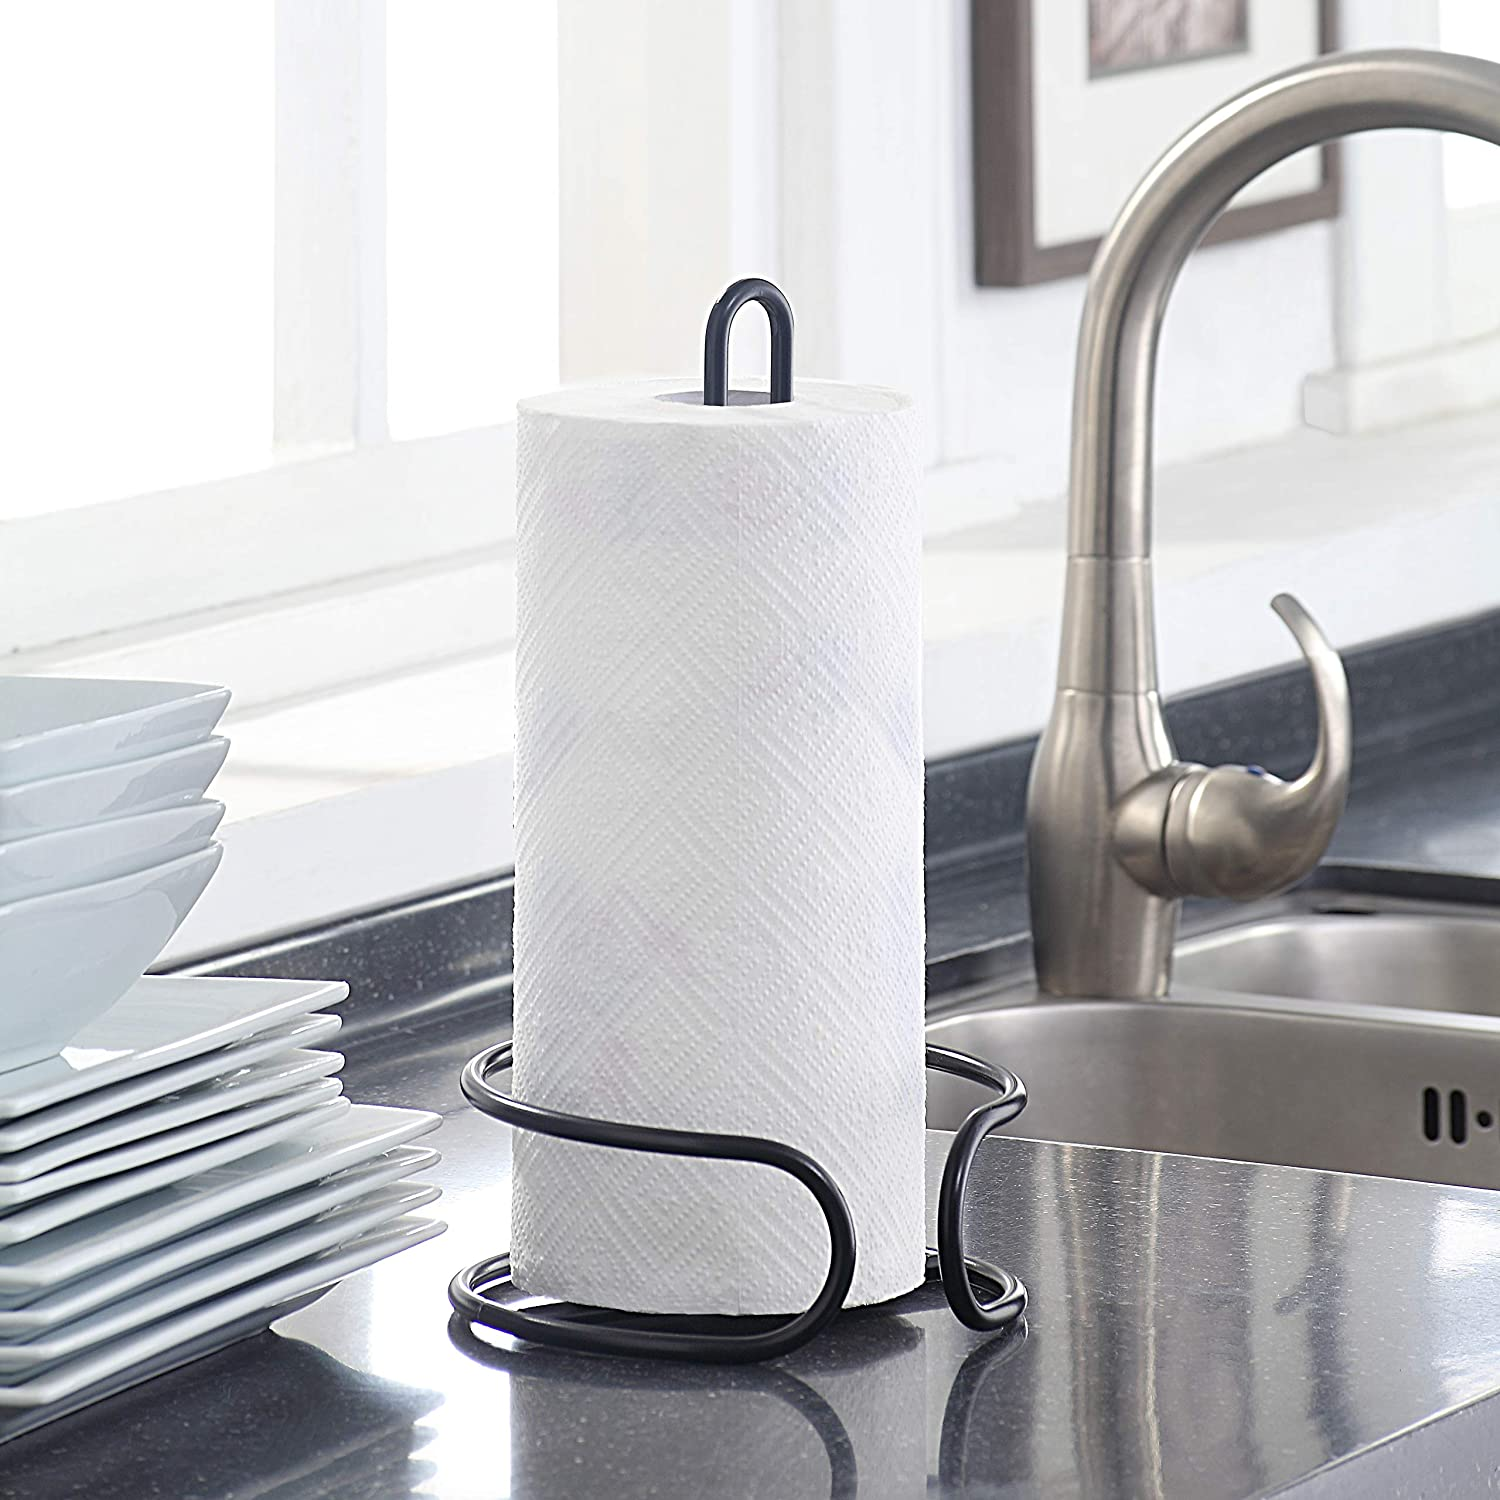 BBQ CHROME Outdoor Picnic Paper Towel Holder; Heavy Enough To Tear By Single Hand SunnyPoint Classic Heavy Wire Gauge Kitchen